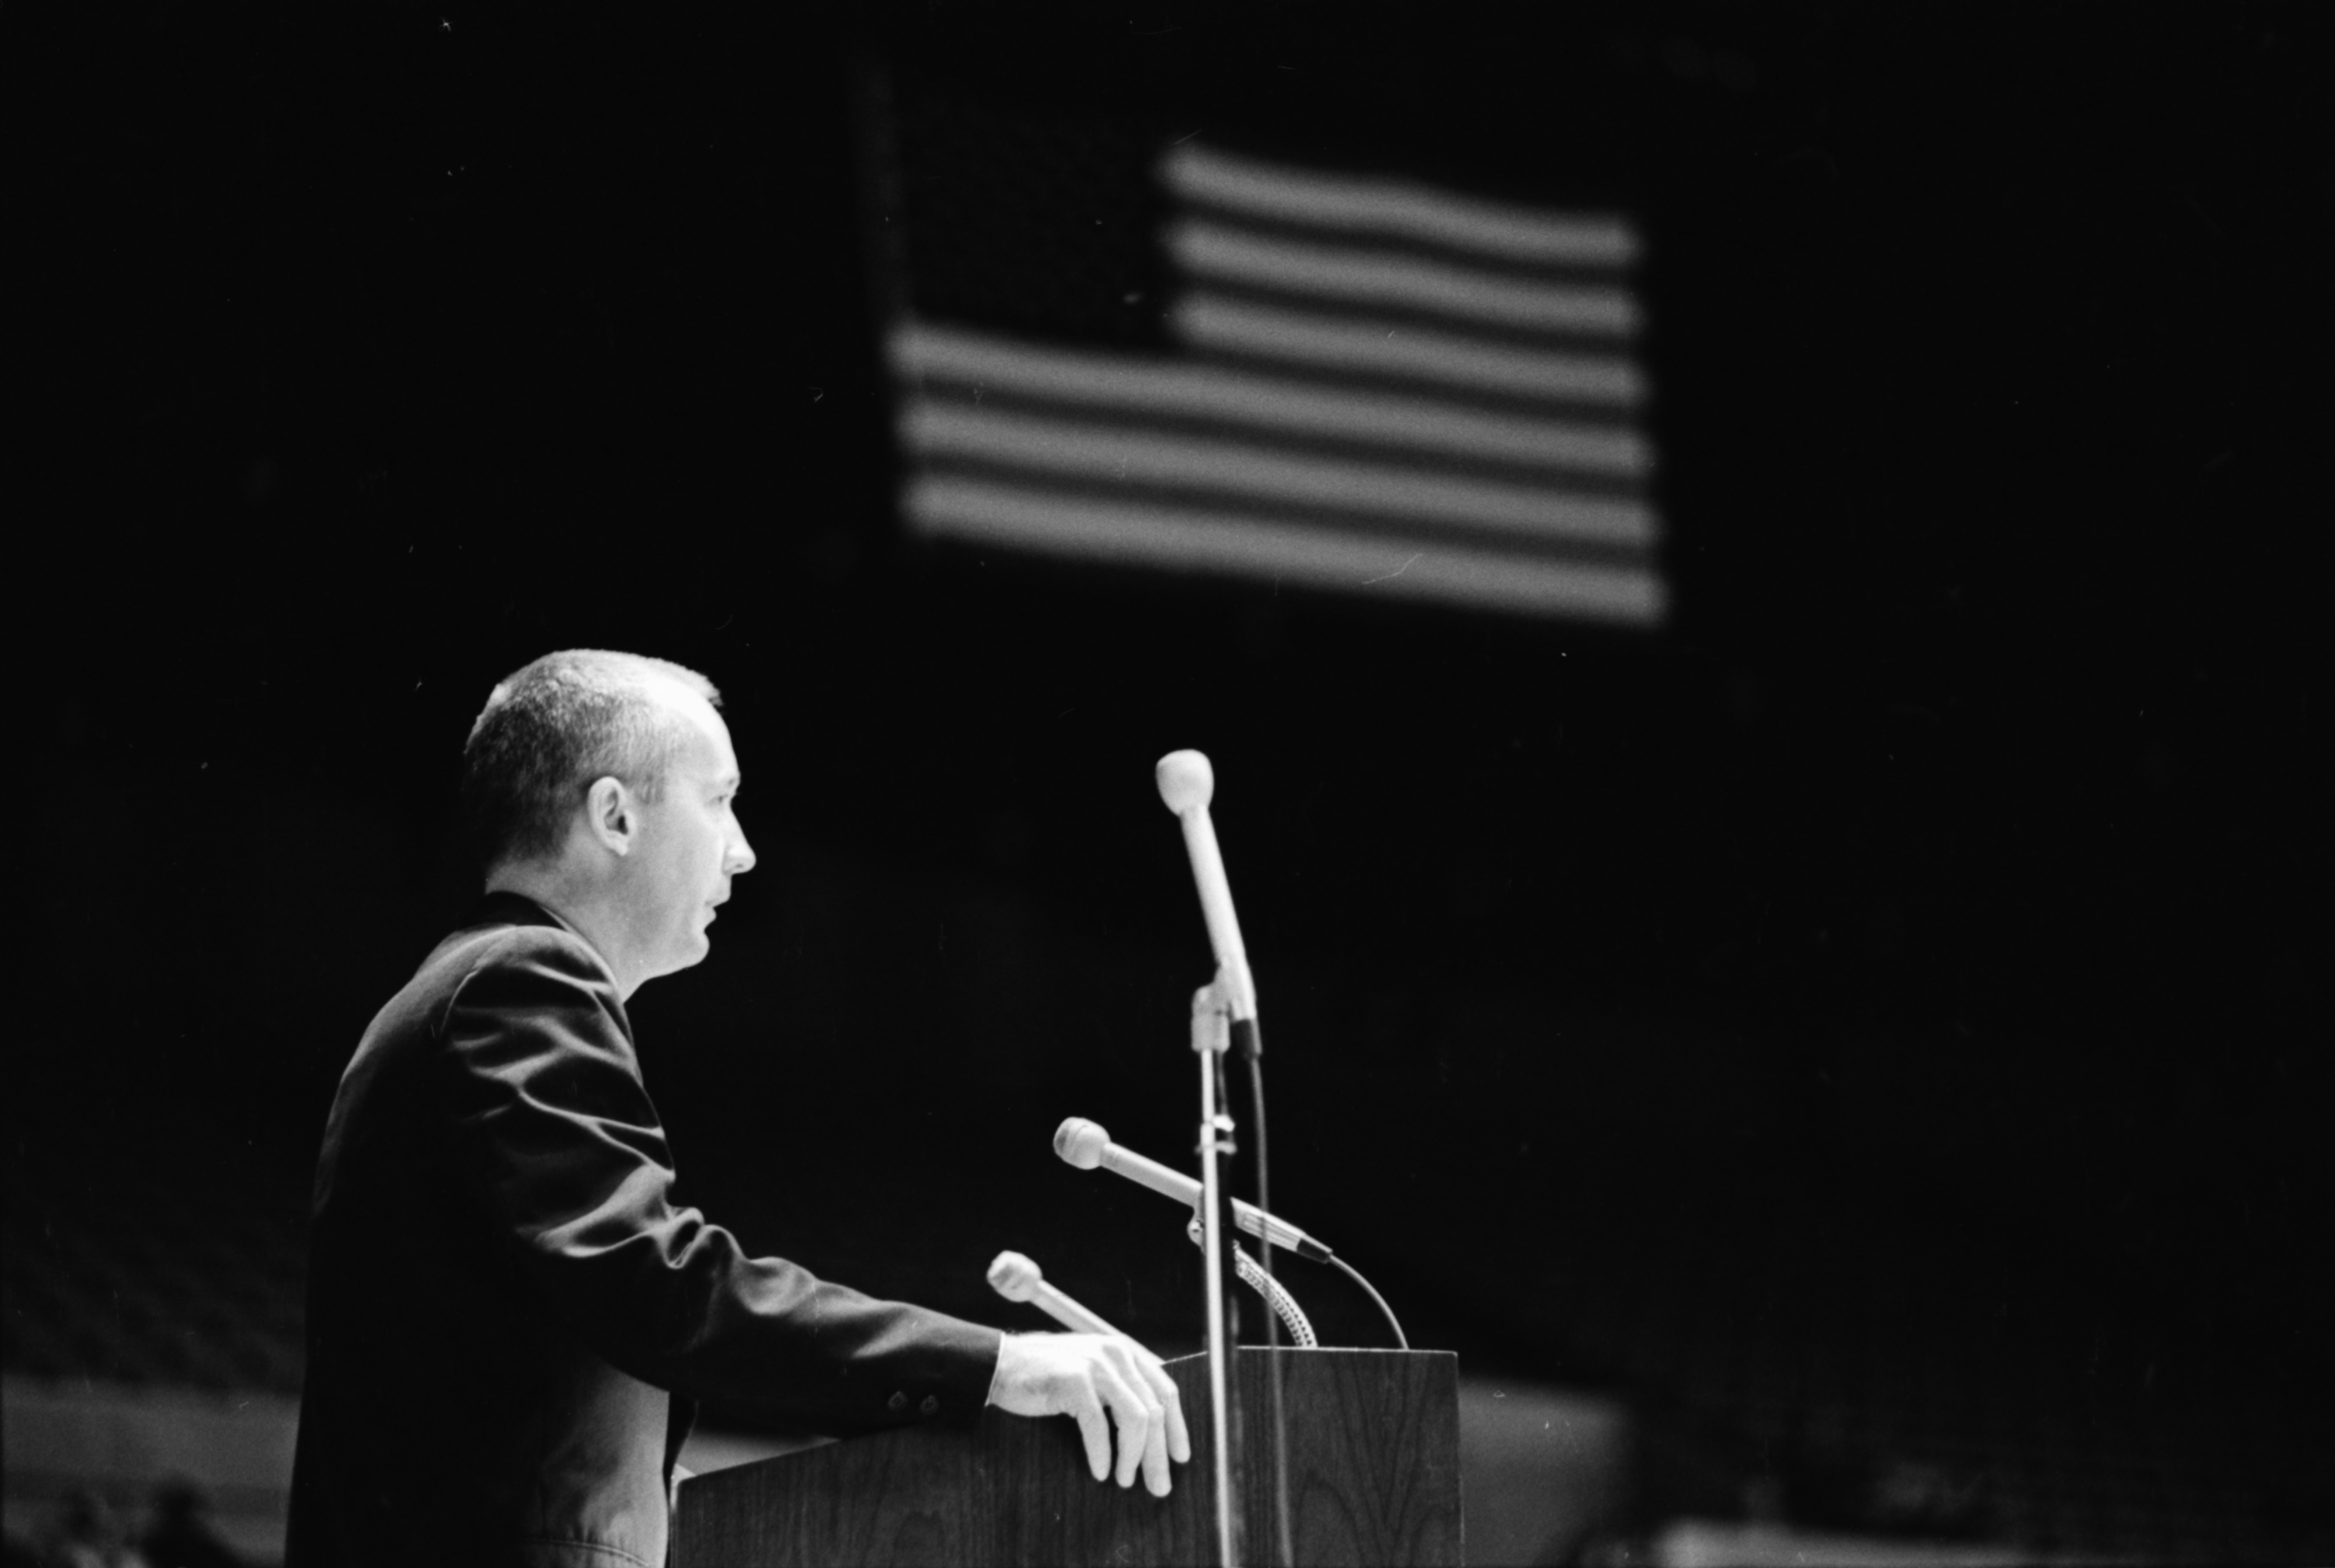 Astronaut James A. McDivitt talks about Apollo 9 space flight to an audience of 5,000, April 1969 image